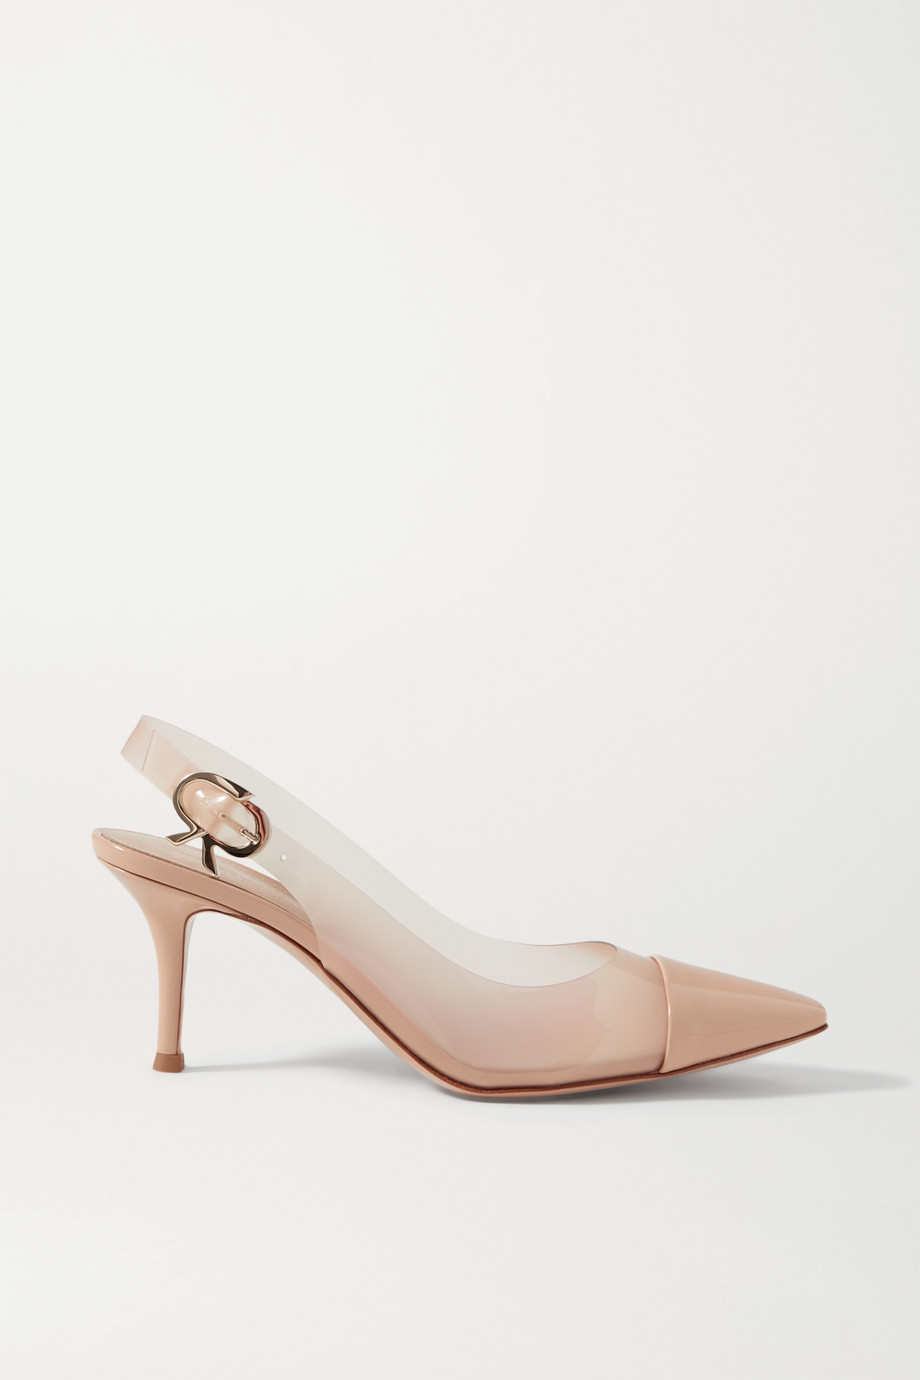 Gianvito Rossi 70 patent-leather and PVC slingback pumps